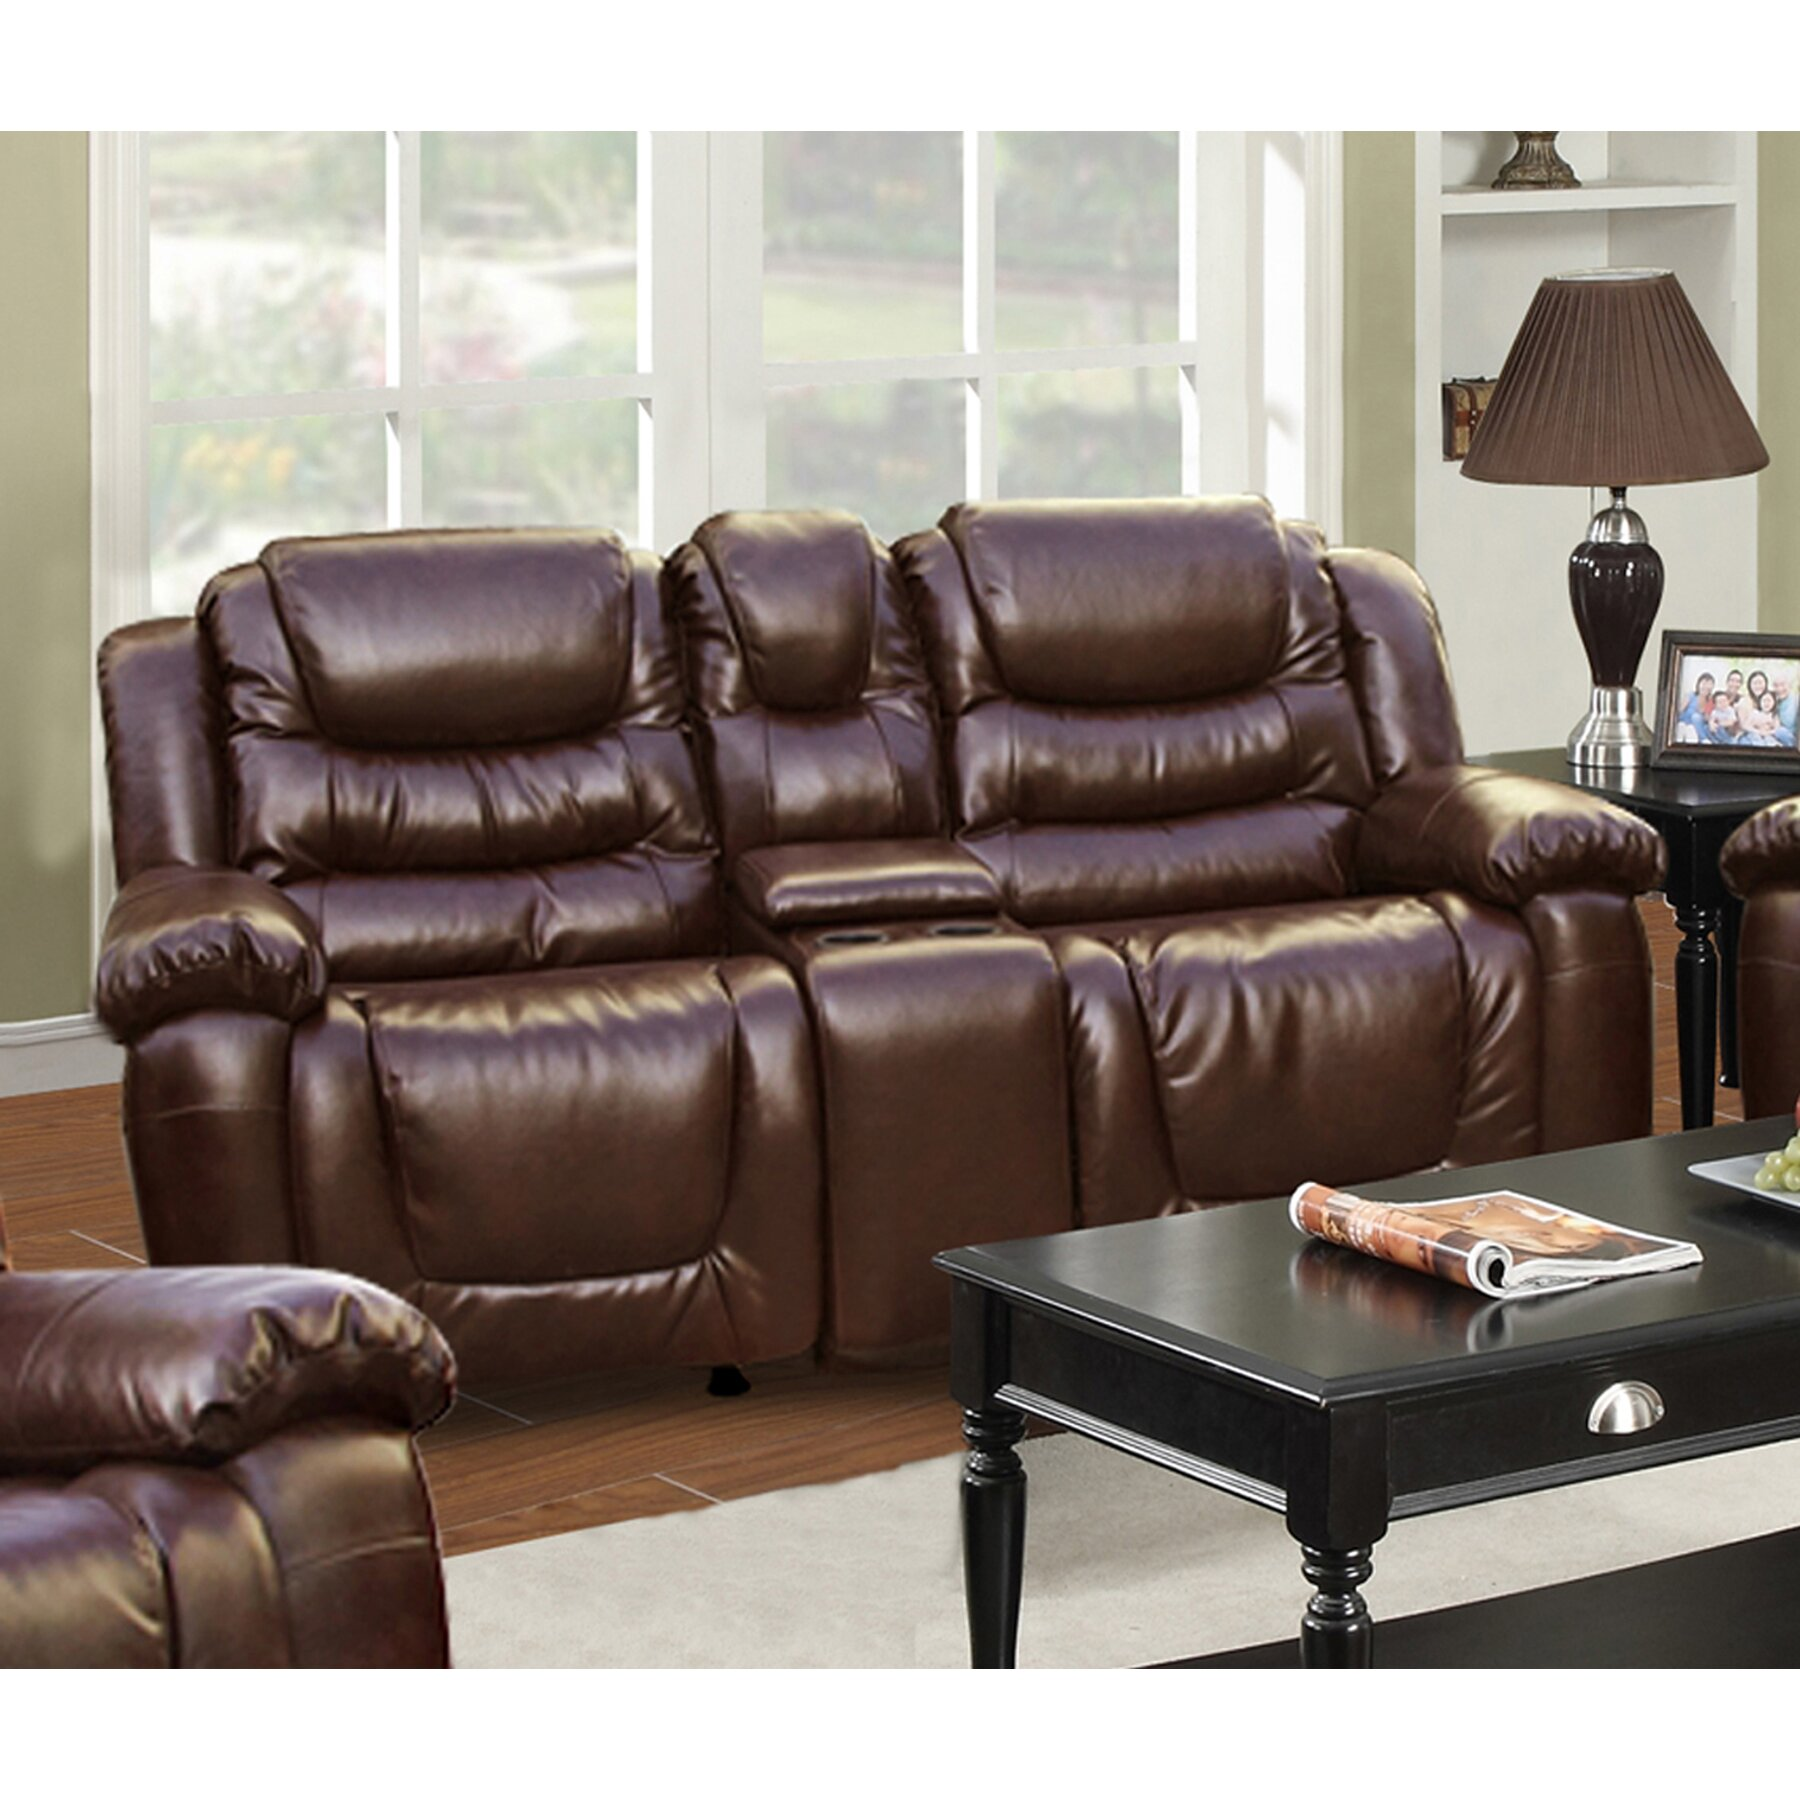 Beverly Fine Furniture Ottawa Rocking And Reclining Loveseat Reviews Wayfair: rocking loveseats